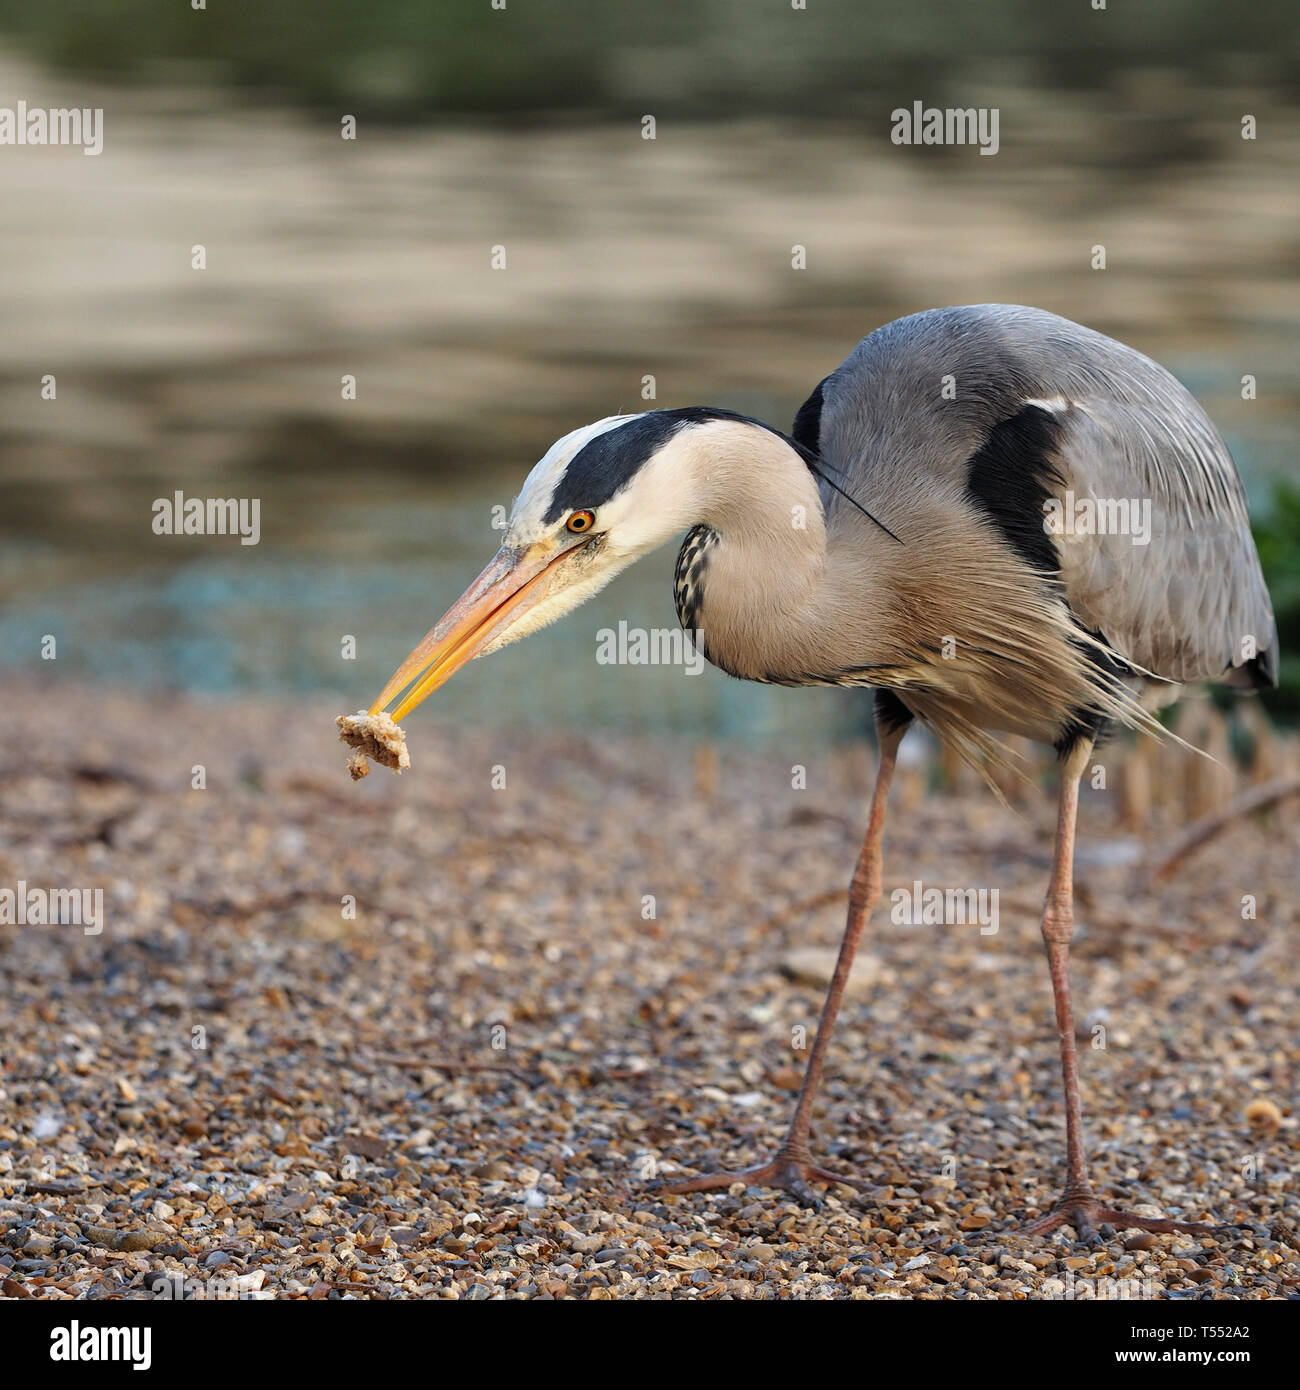 grey-heron-ardea-cinerea-feeding-on-discarded-sandwich-in-st-james-park-london-england-uk-T552A2.jpg